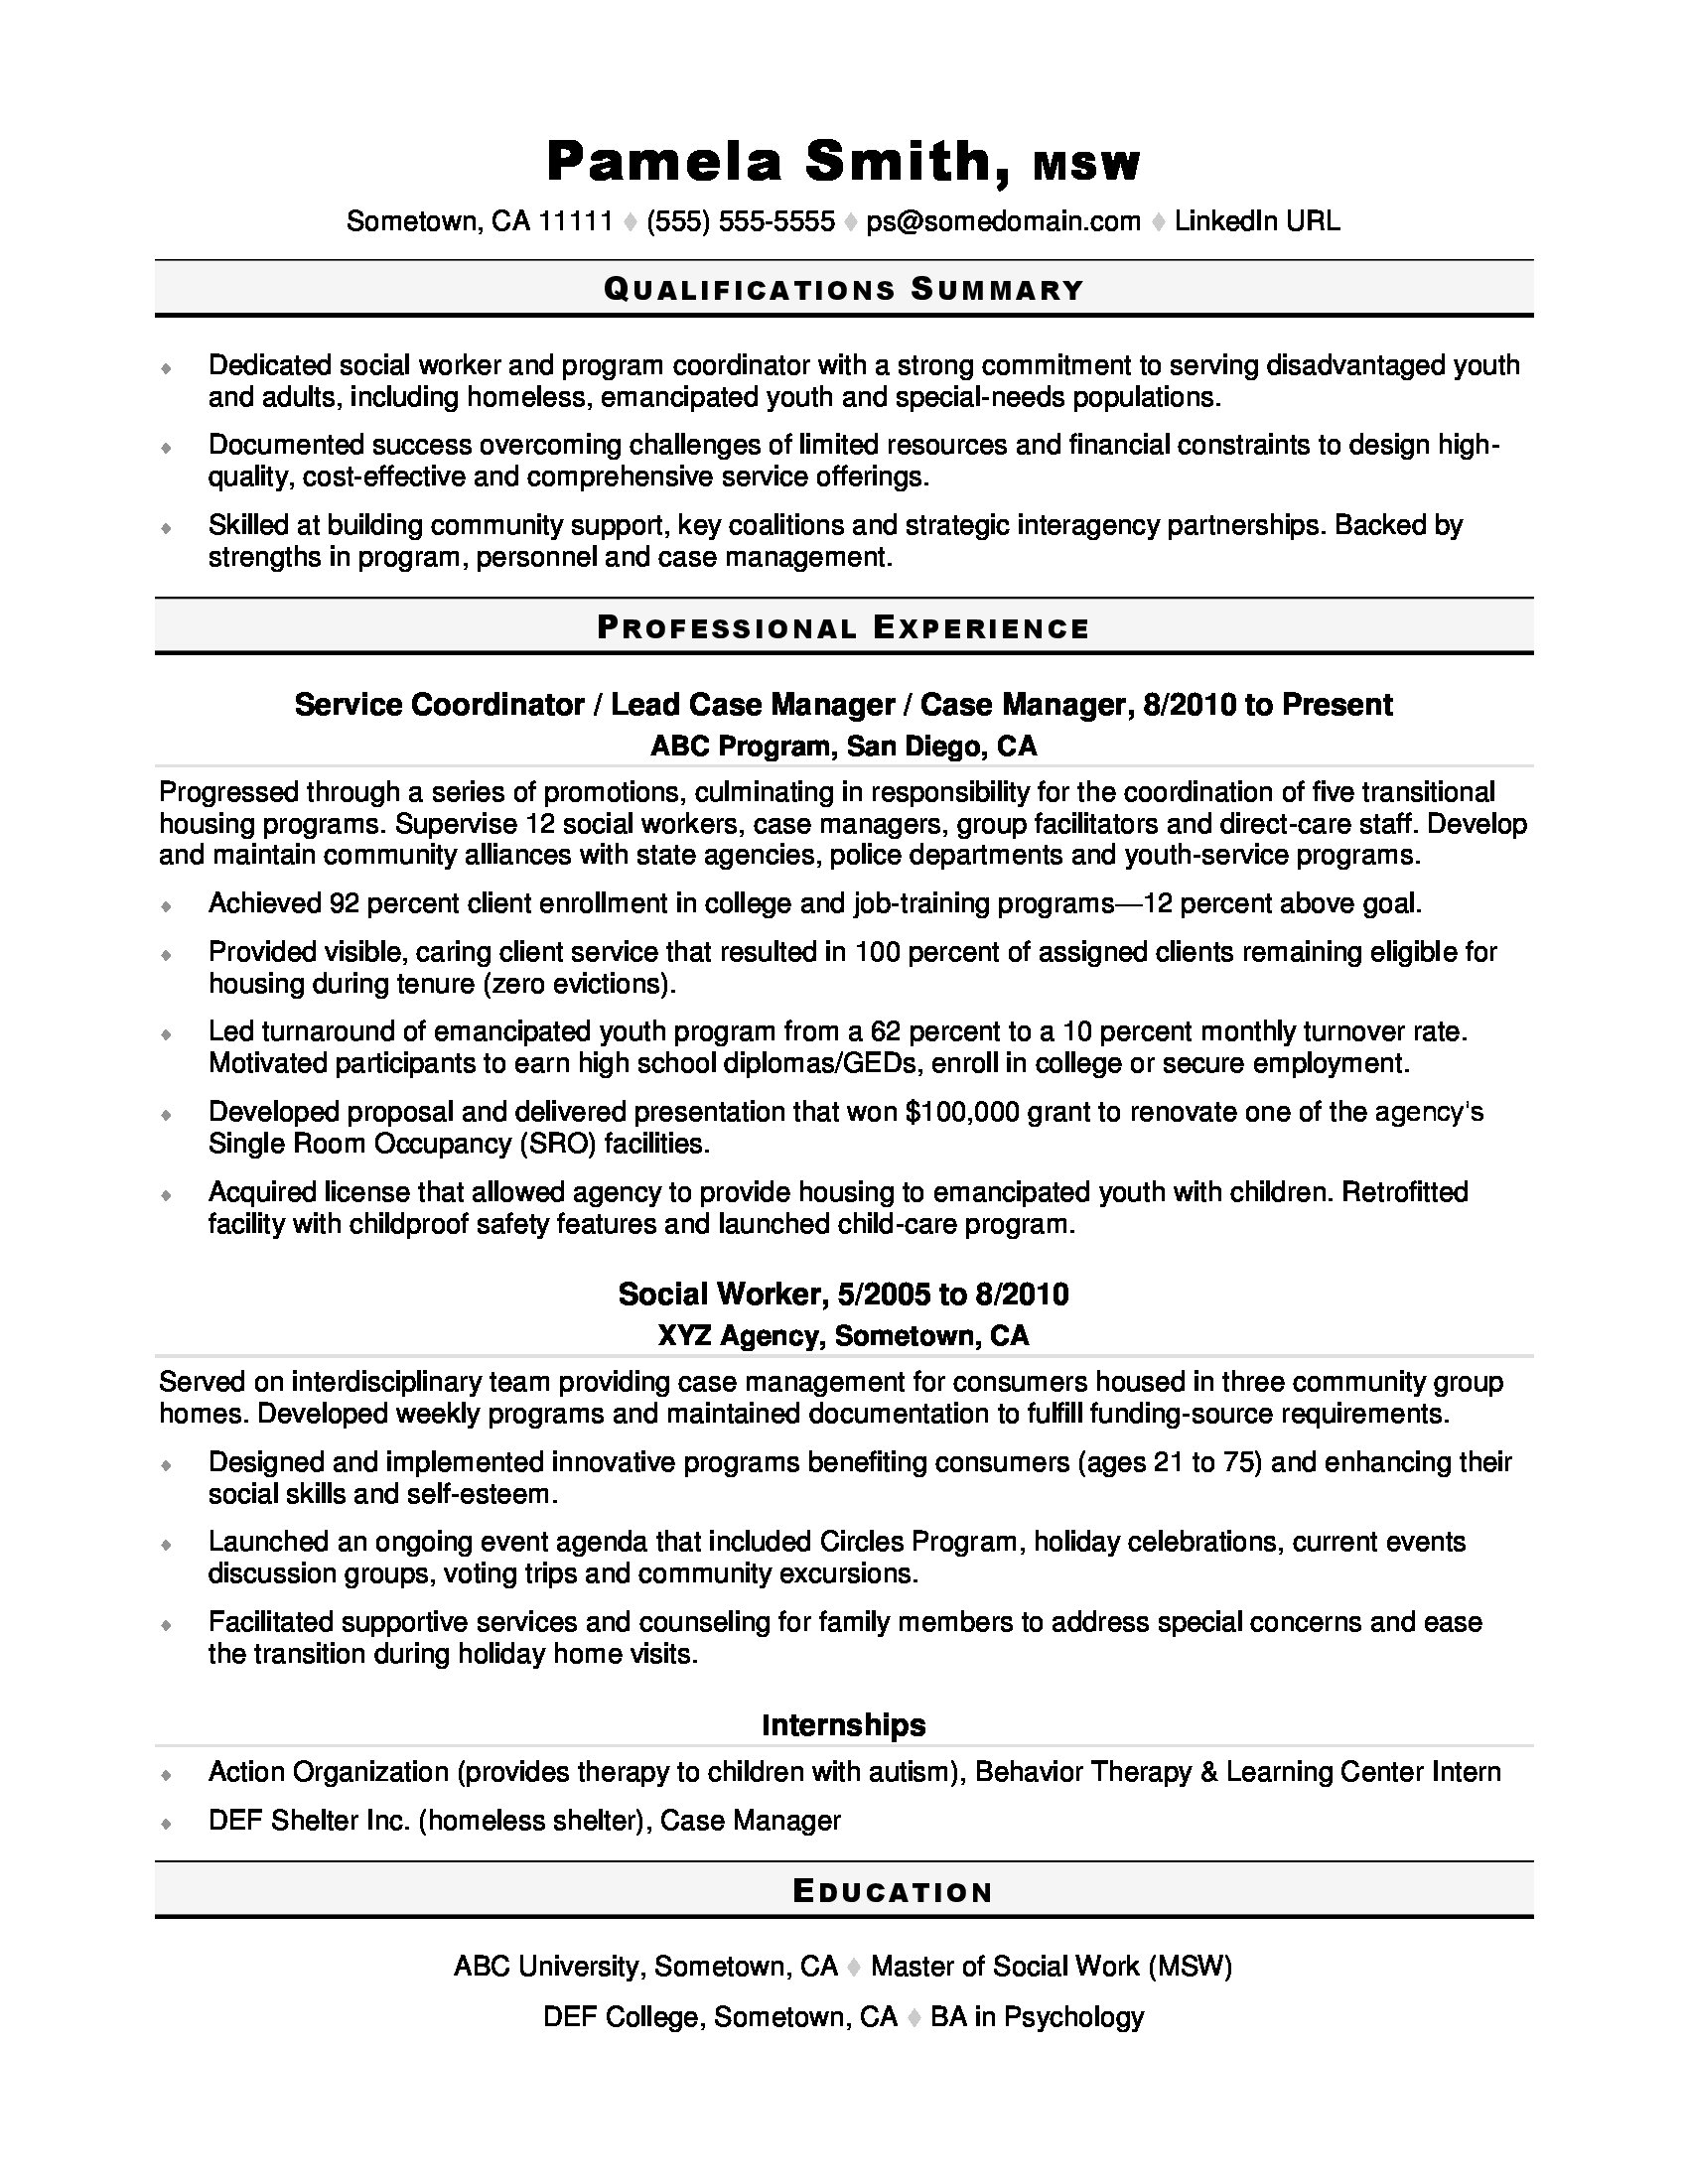 social worker resume sample monster good work examples find job without freelance Resume Good Work Resume Examples